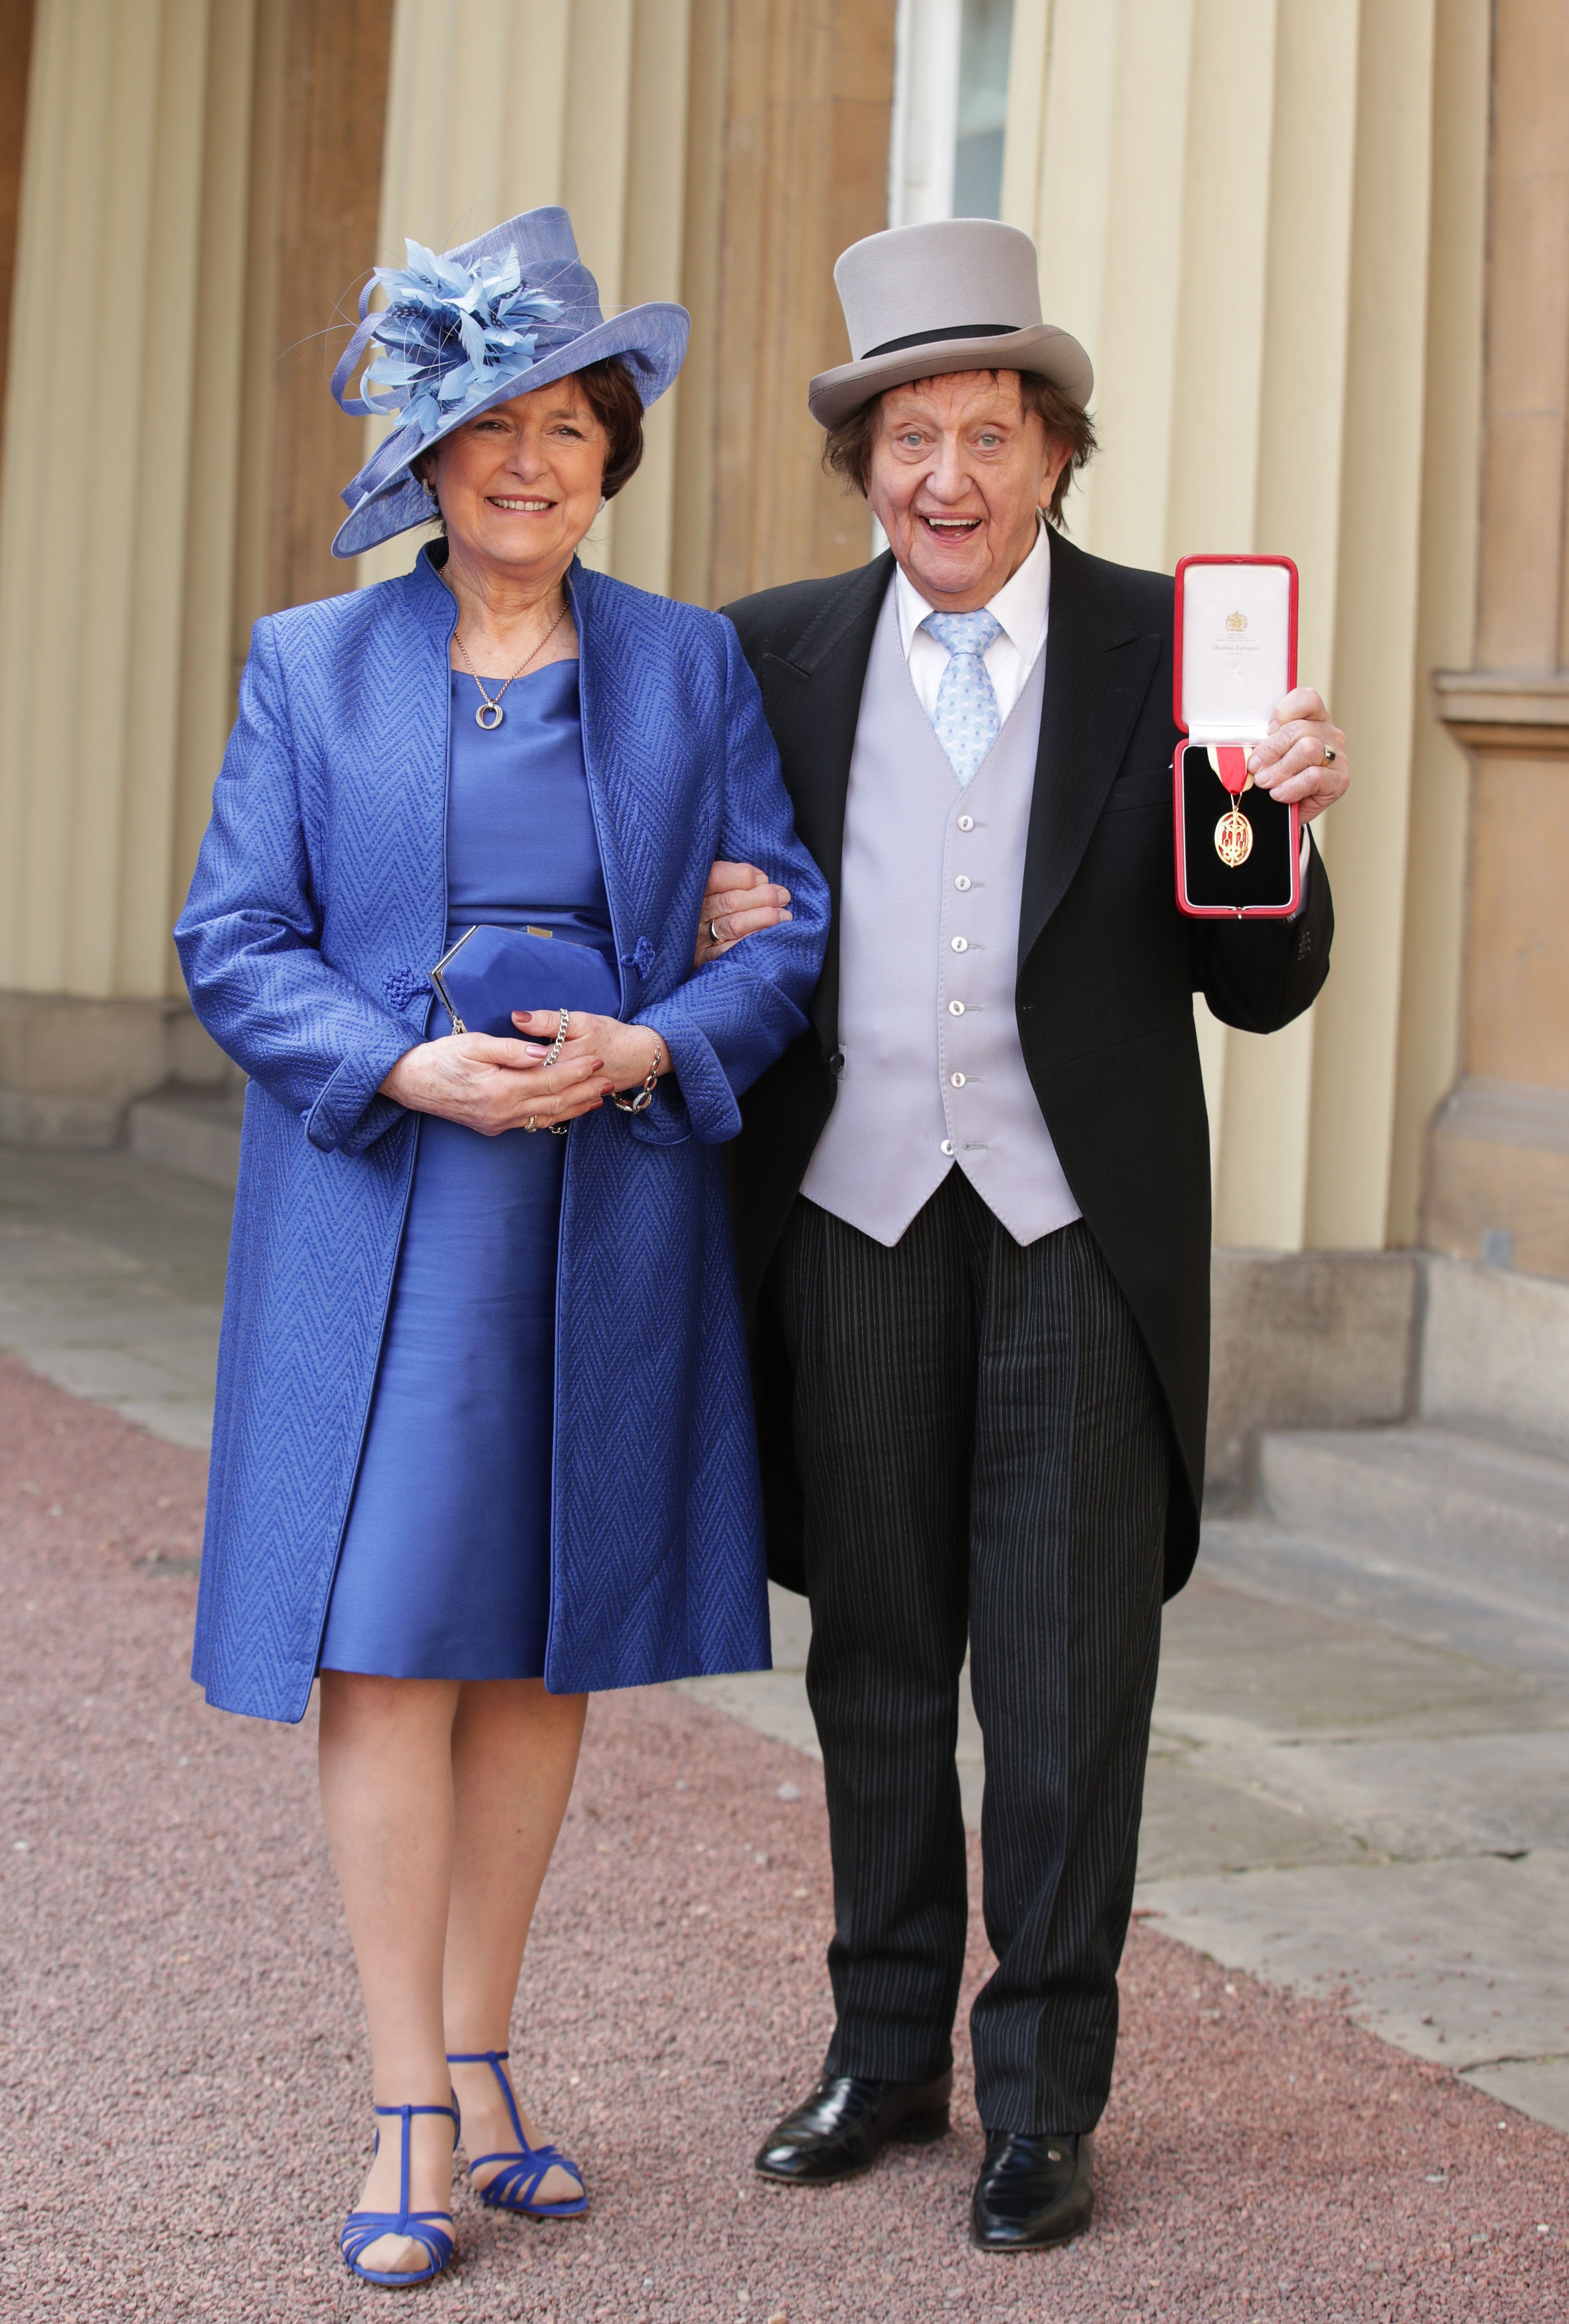 Sir Ken Dodd and his wife Anne Jones. Credit: PA